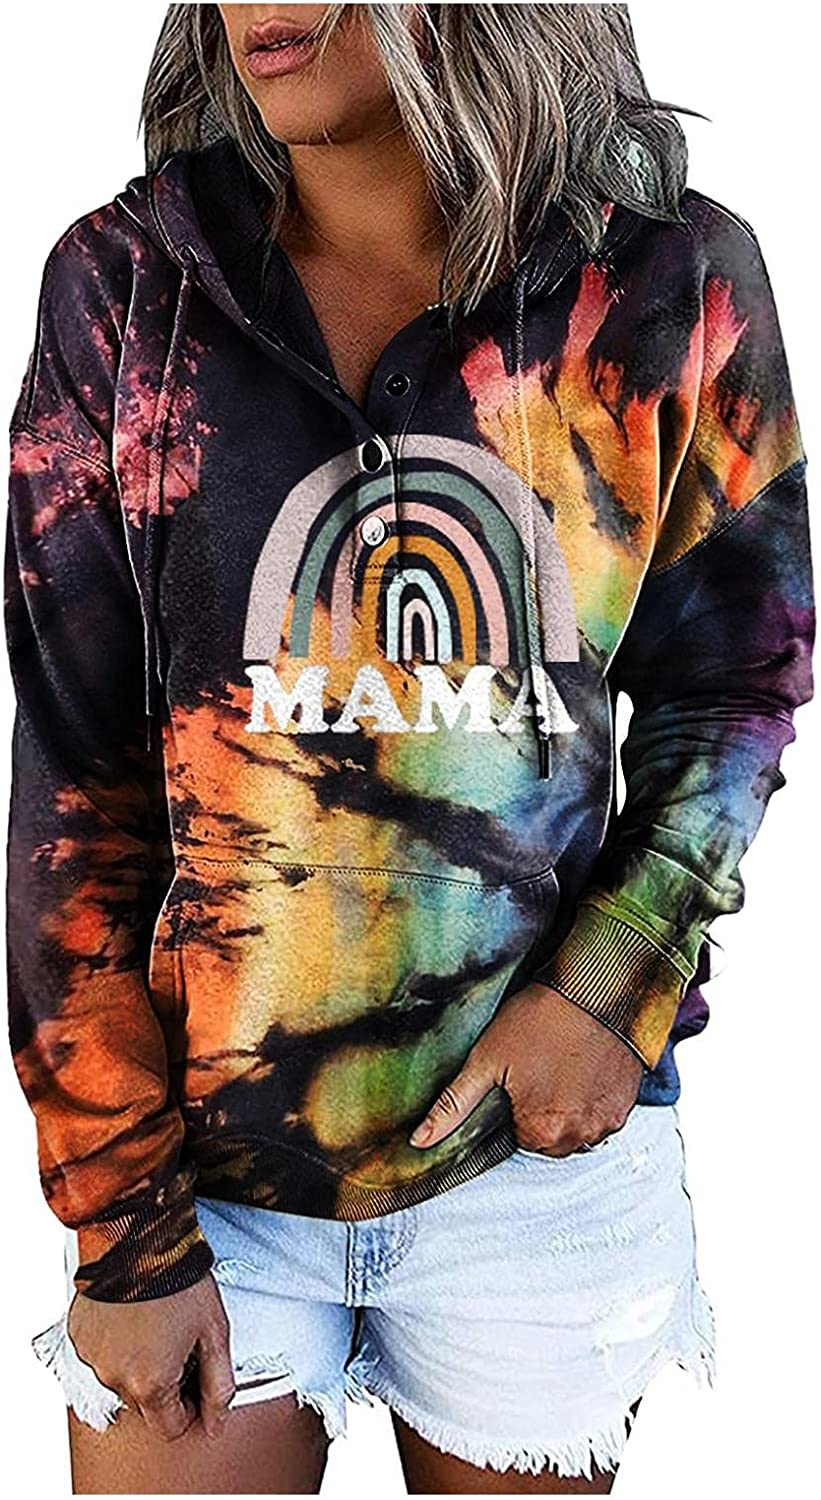 POLLYANNA KEONG BABAKE Hoodies for Women Fashion Tie Dye Long Sleeve Sweatshirts Letter Graphic Loose Tops Blouses